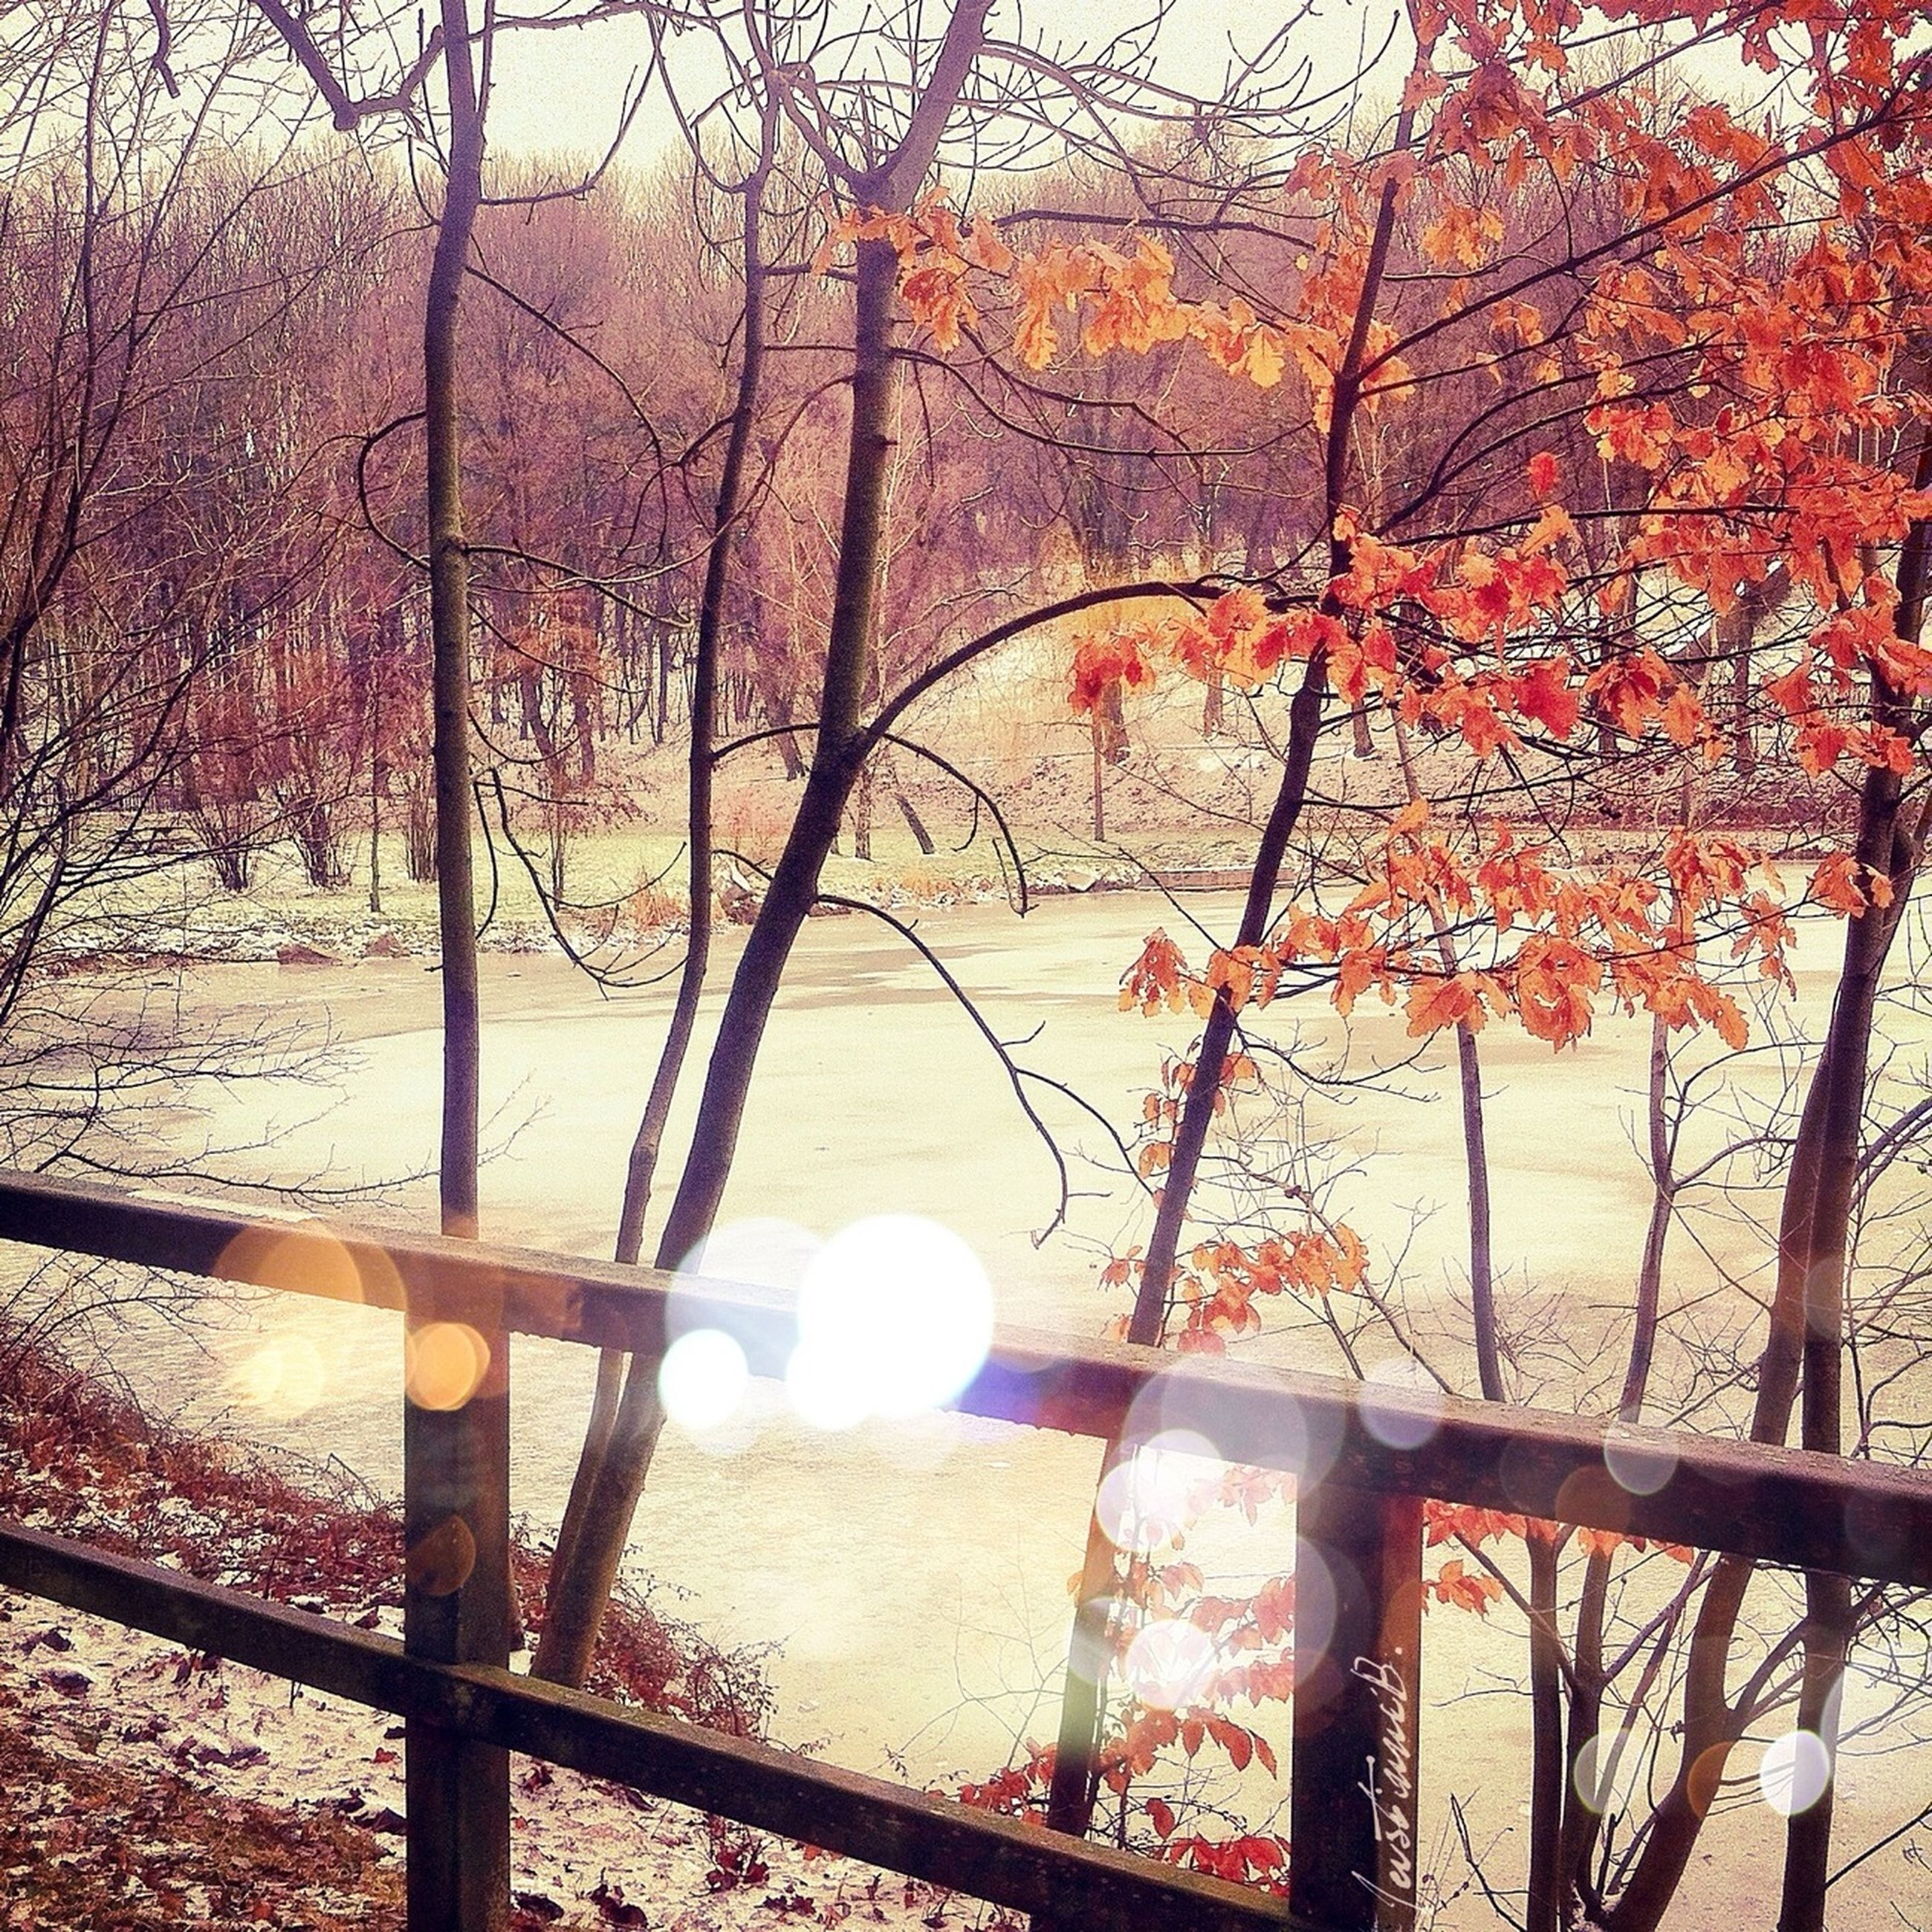 tree, railing, branch, season, tranquility, fence, nature, beauty in nature, tranquil scene, autumn, metal, water, scenics, growth, day, bare tree, no people, outdoors, park - man made space, orange color